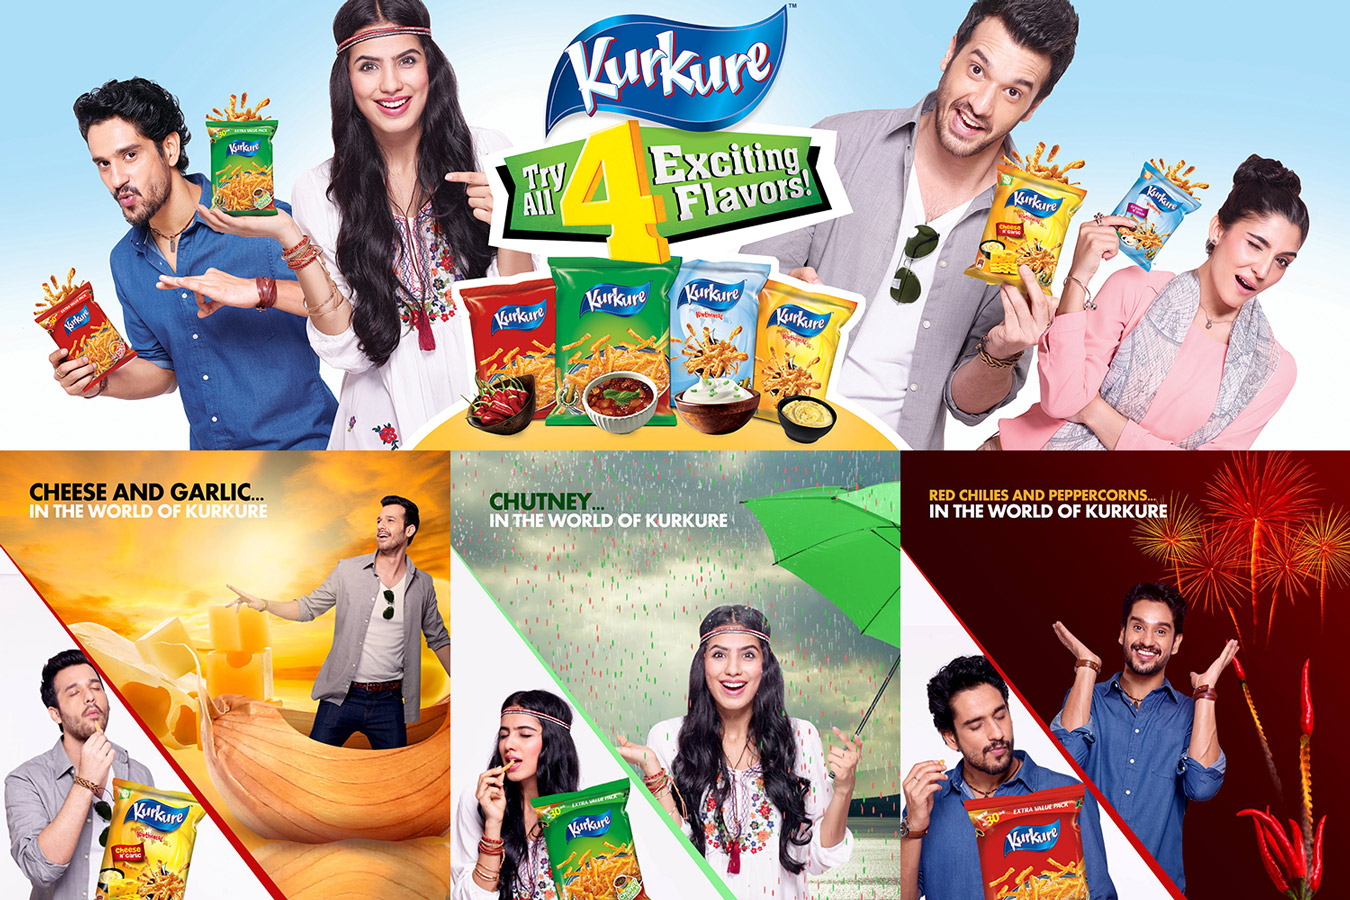 Kurkure Lays PepsiCo Advertising pakistan website billboards